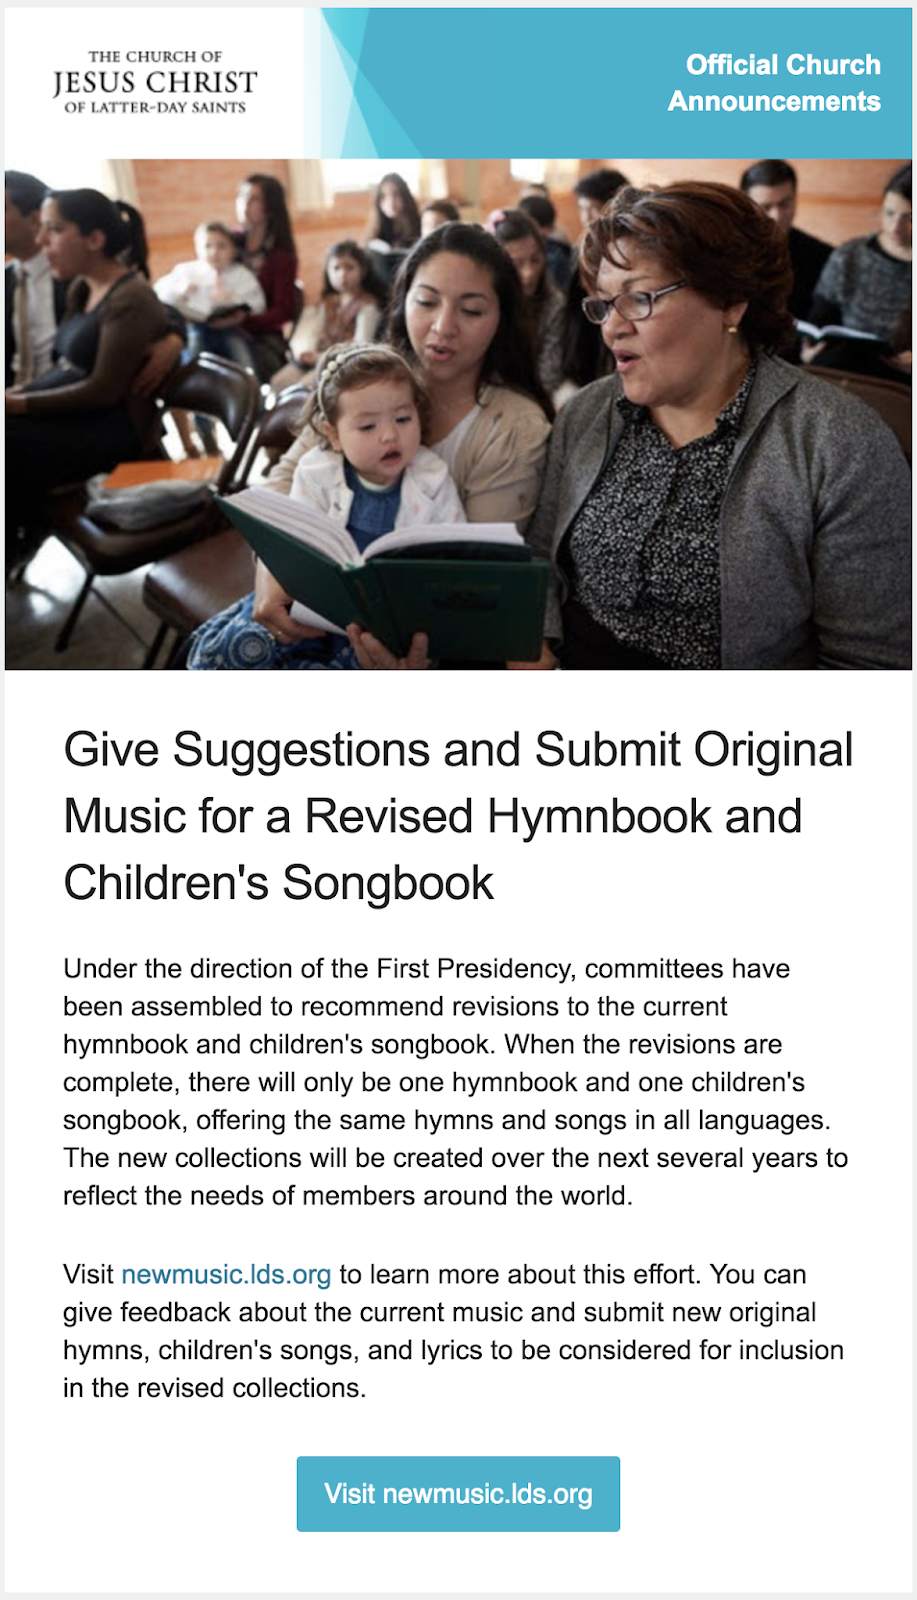 Camille's Primary Ideas: Revisions to the Hymnbook and Children's Songbook